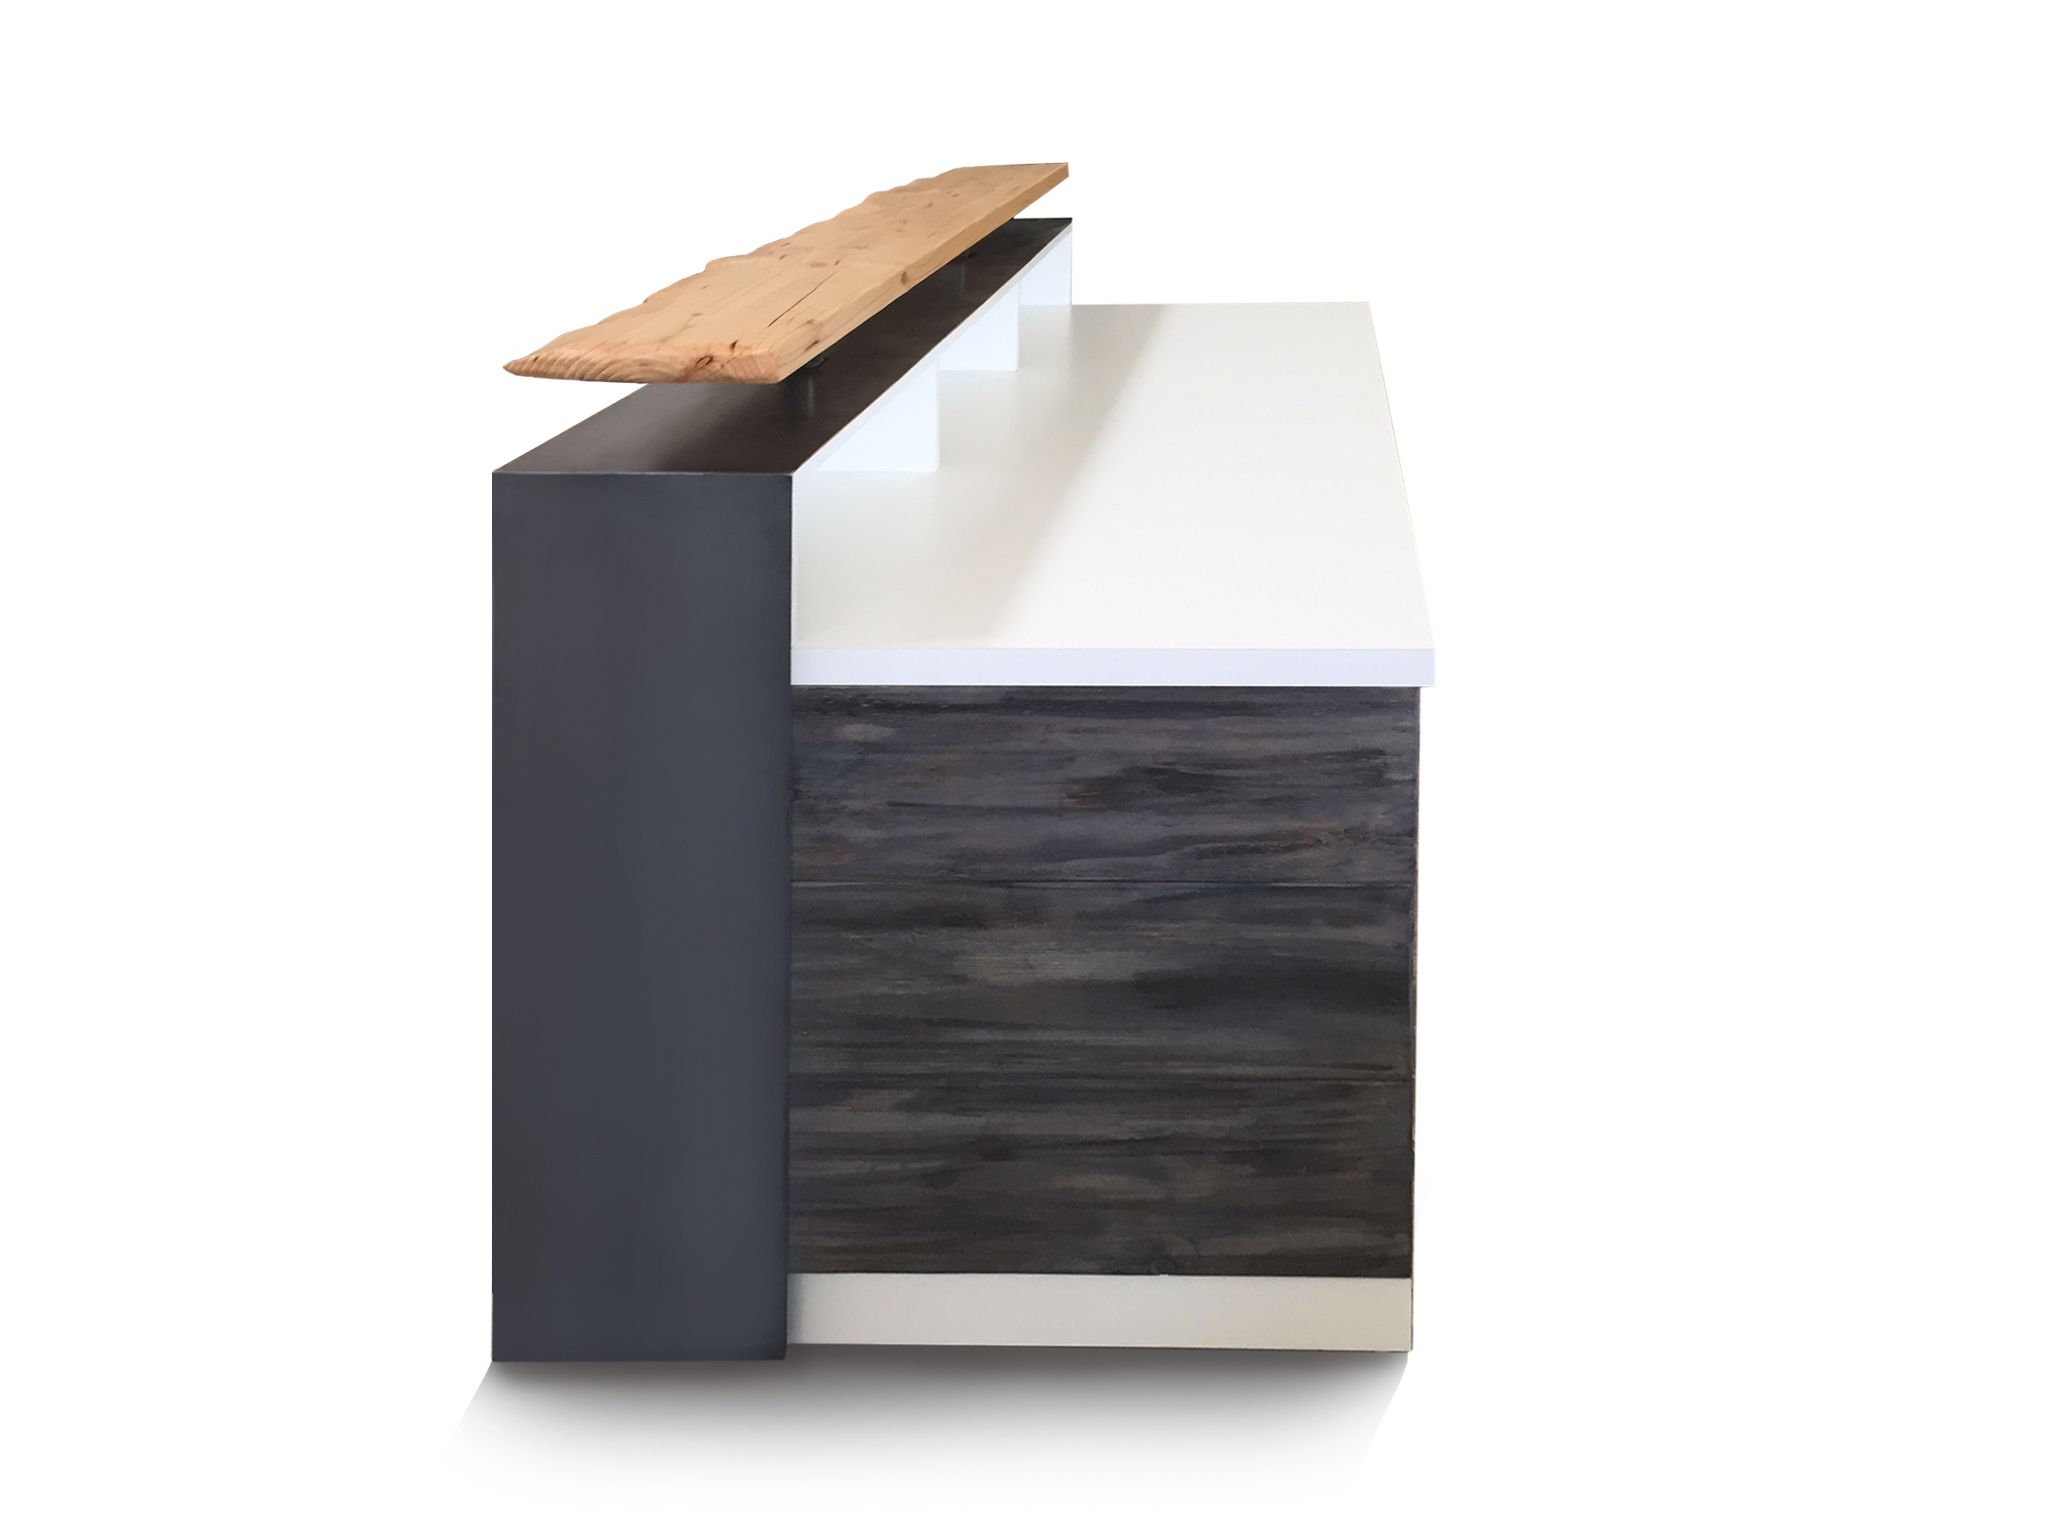 Buy A Hand Made 2 White Reception Desk Or Sales Counter With Distressed Reclaimed Wood And Live